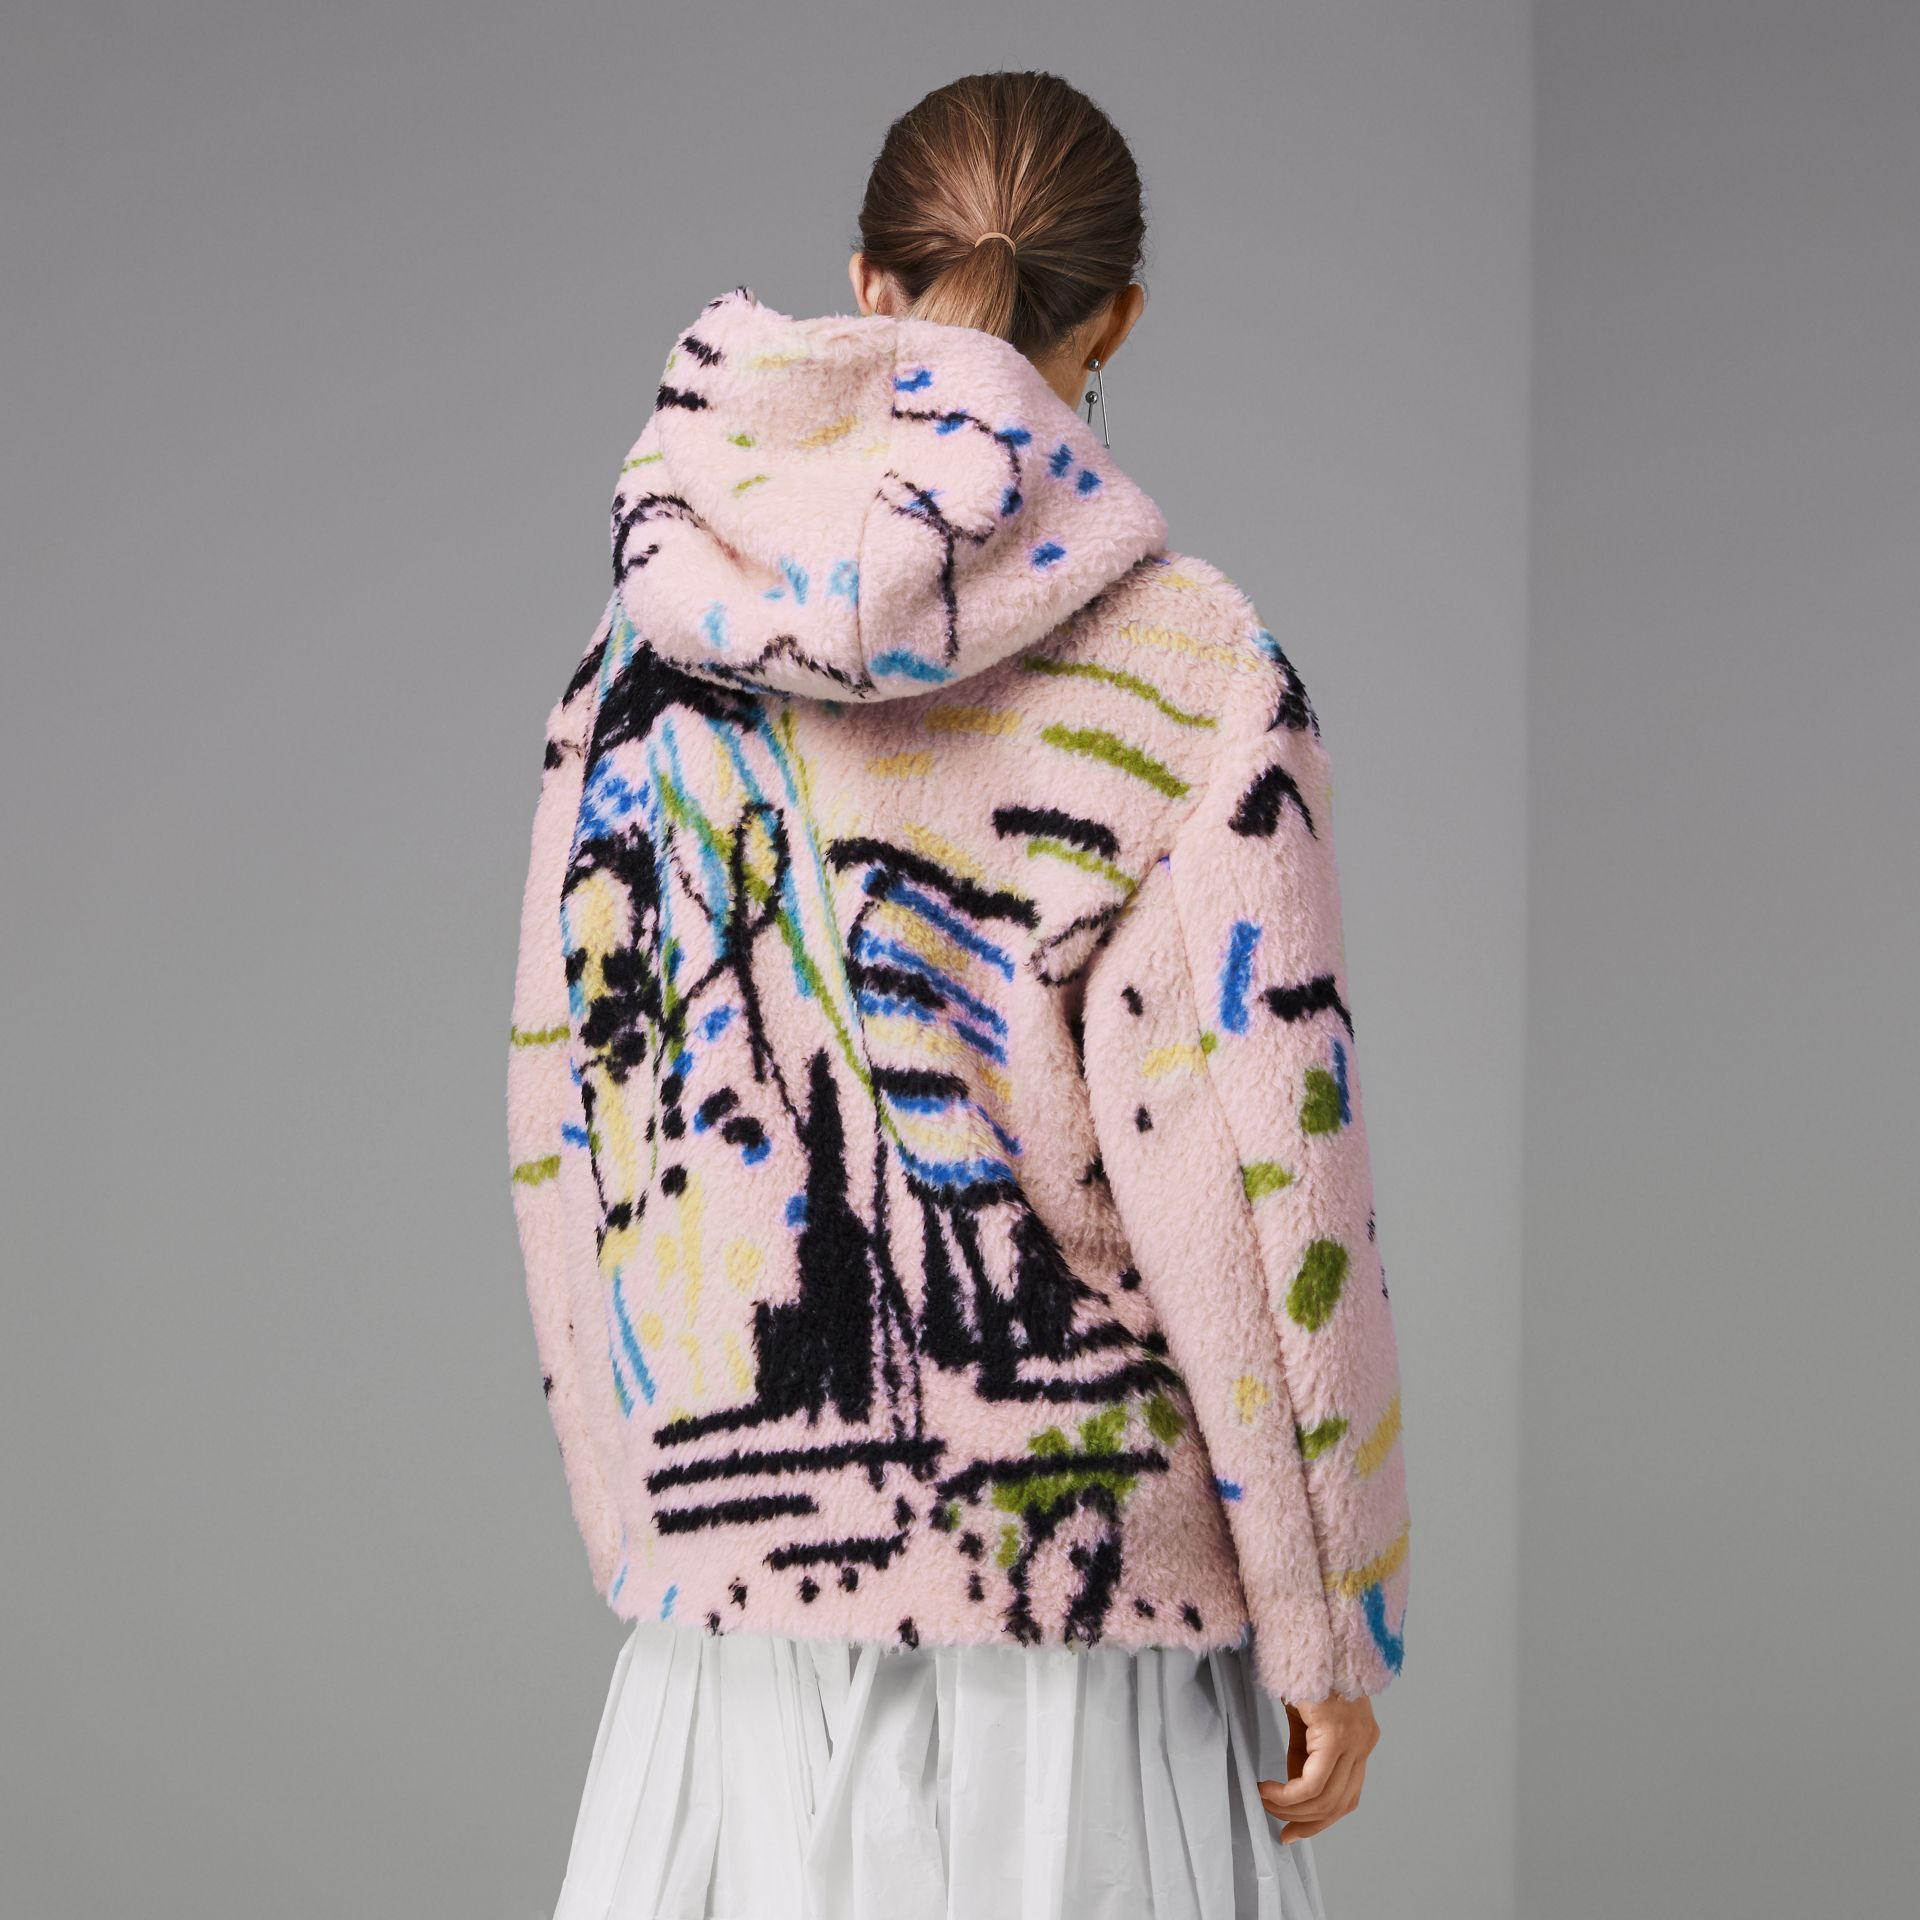 Graffiti Print Cashmere Silk Fleece Hoodie in Pale Rose - Women | Burberry Hong Kong - gallery image 2